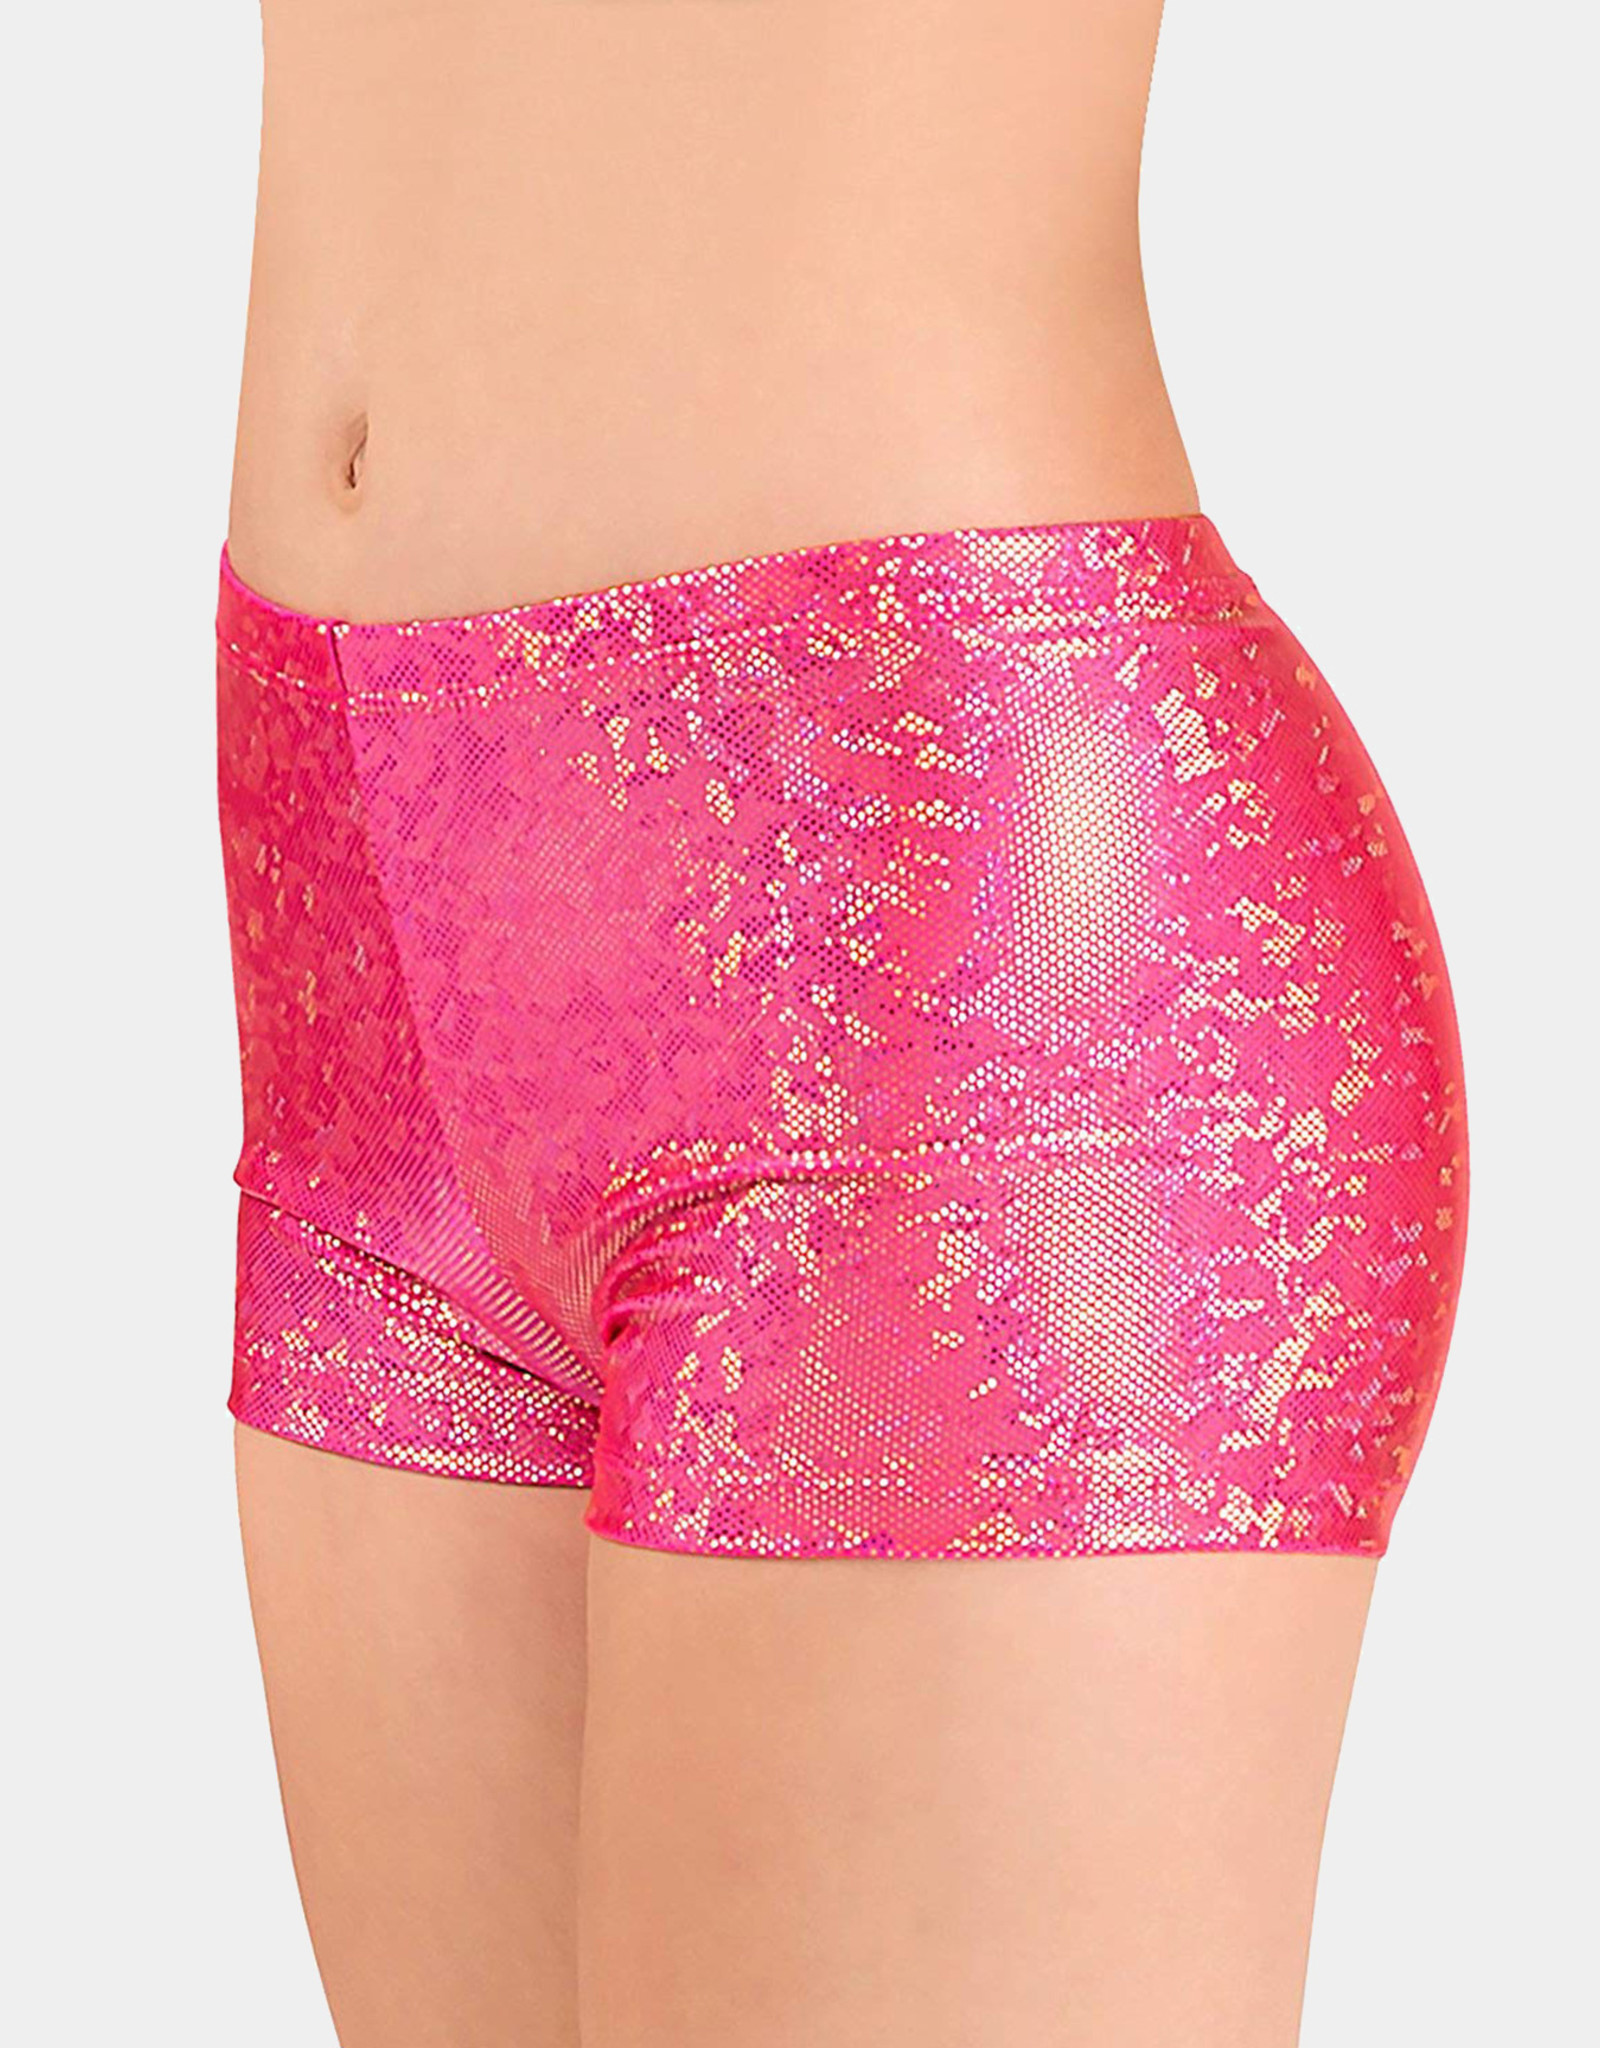 BODY WRAPPERS CHILD PRINT HOT SHORTS (700)